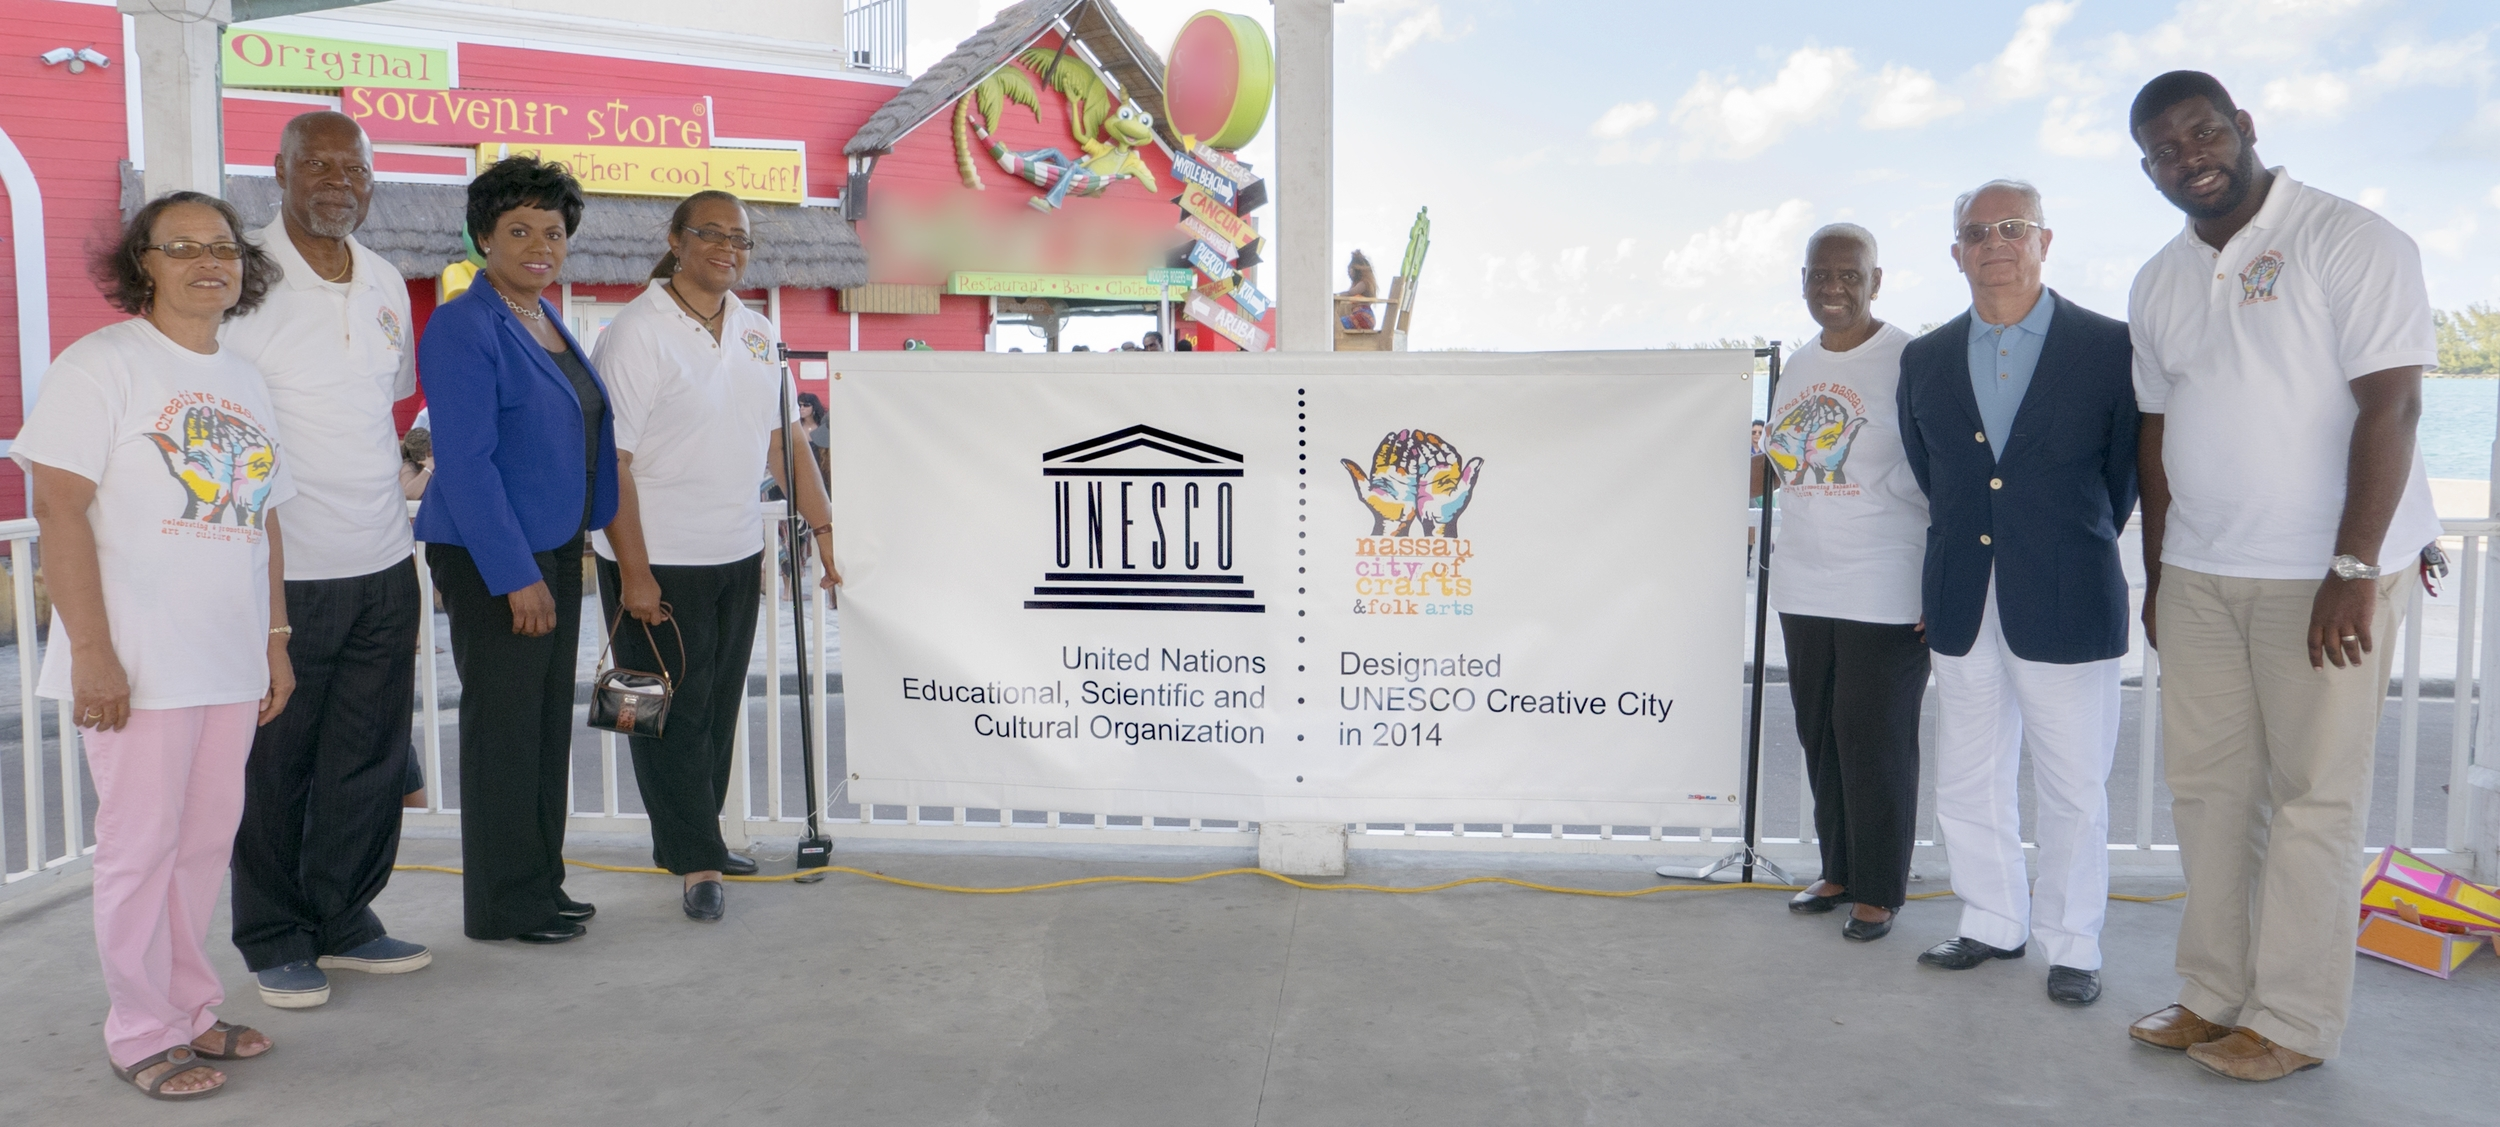 """Members of Creative Nassau, along with Executive Members of the Downtown Nassau Partnership officially unveiled the UNESCO Creative Cities Network Banner at the Creative Nassau Pompey Square Market in March 2015. Left to right: Pam Burnside CN President, Dr Davidson Hepburn, CN Secretary, Vernice Walkine DNP, Patricia Glinton Meicholas, CN Vice President, Rosemary Hanna, Charles Klonaris and """"Mayor"""" Gevon Moss of the DNP."""